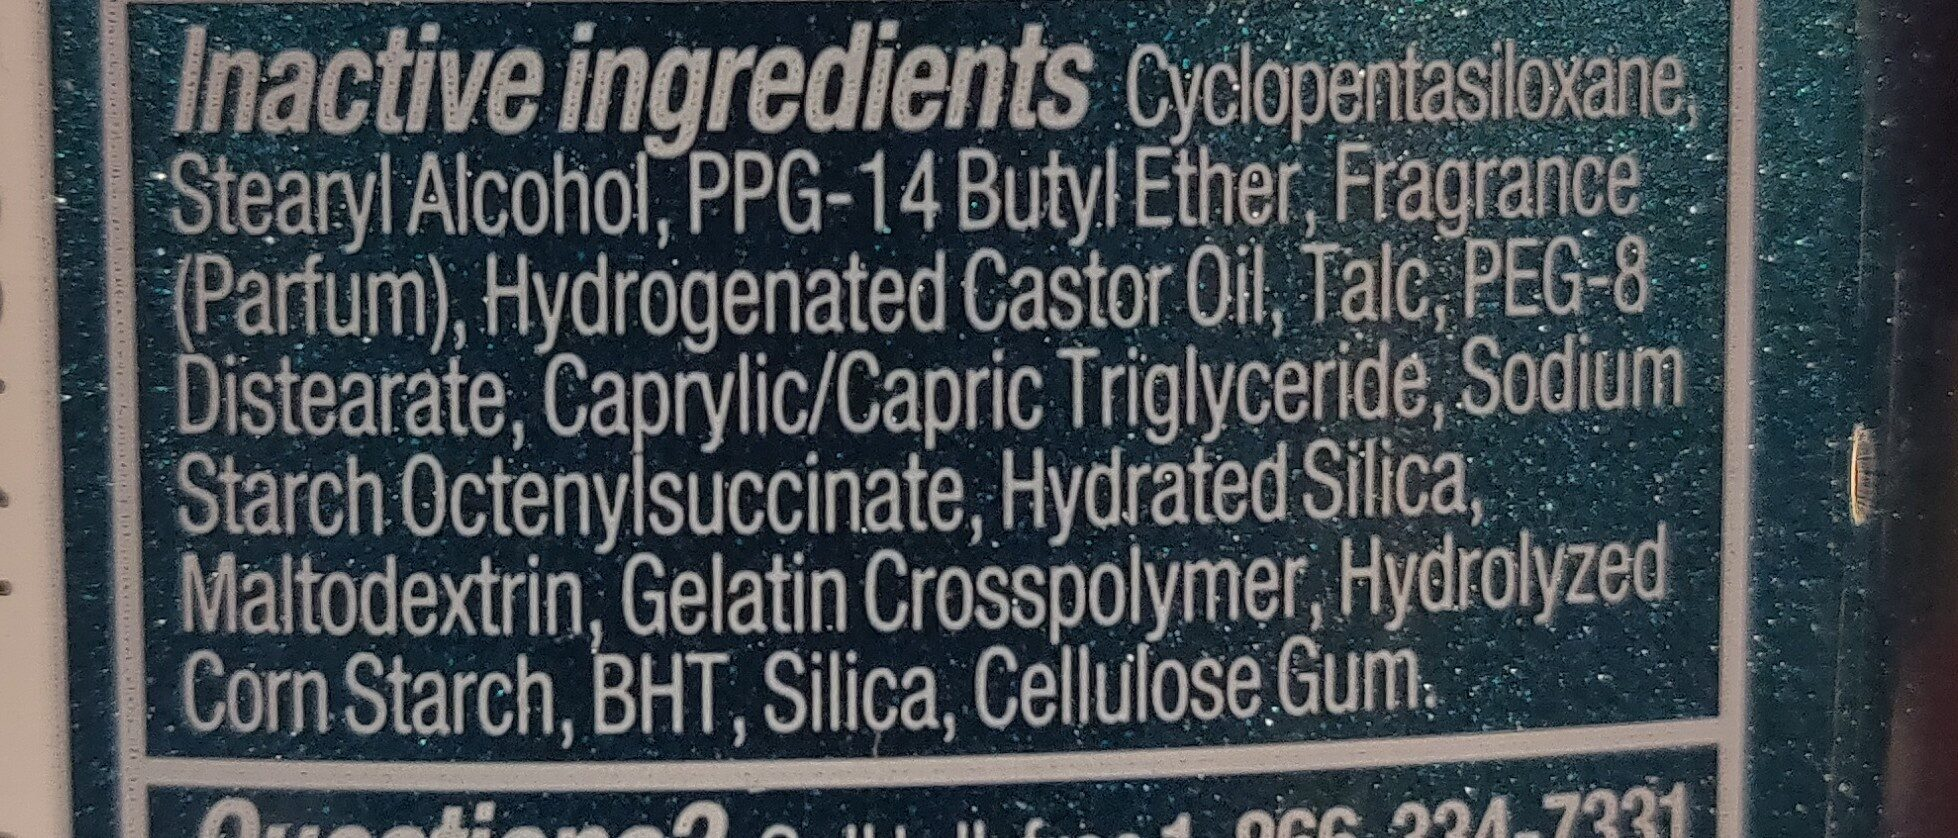 degree - Ingredients - en